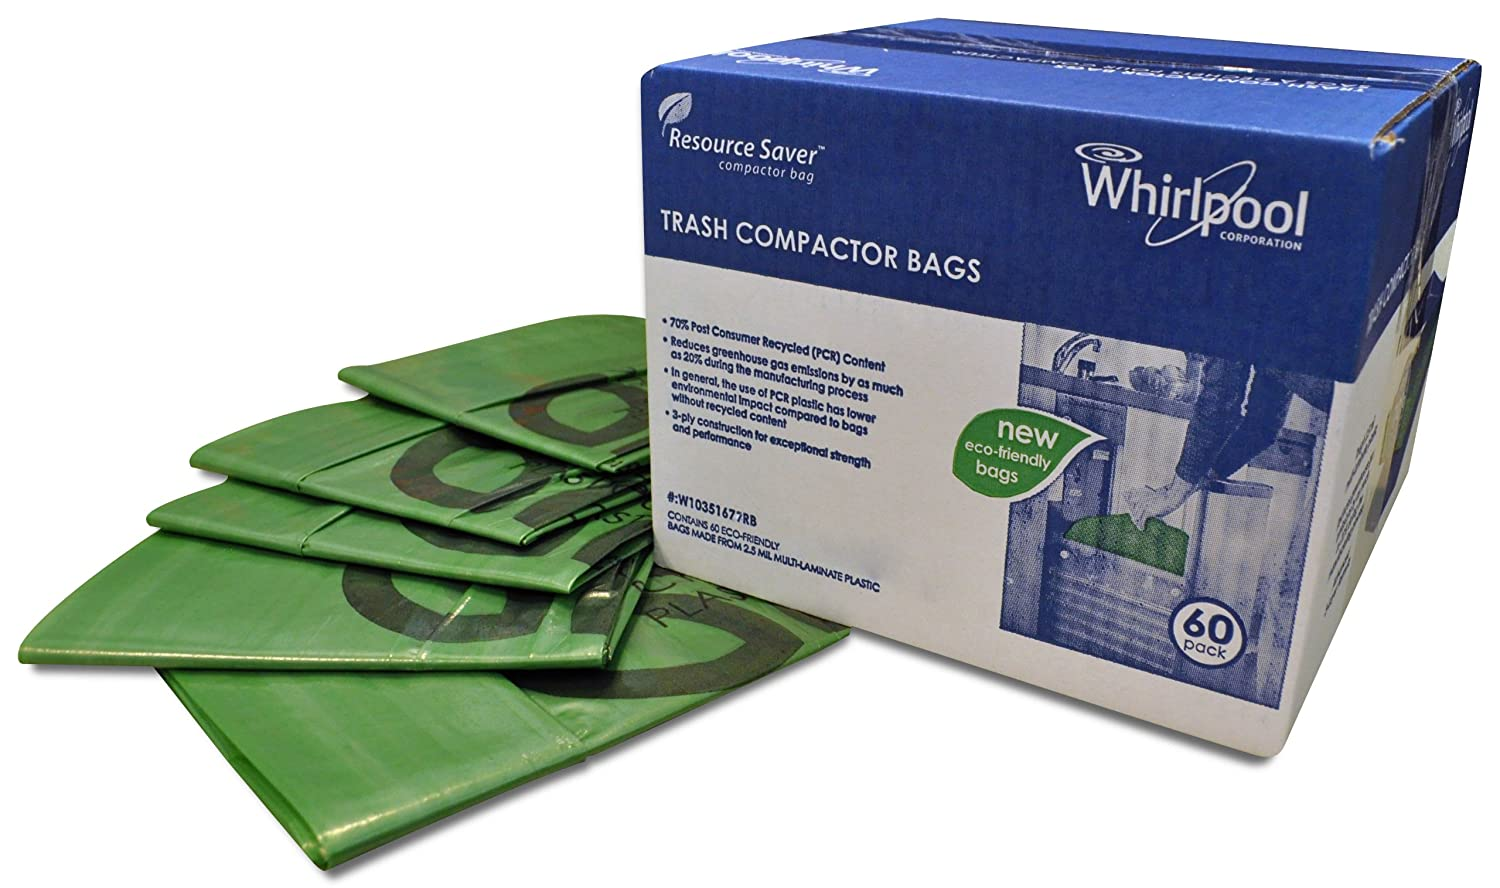 How Does A Trash Compactor Work Amazoncom Whirlpool W10165294rb 15 Inch Plastic Compactor Ba